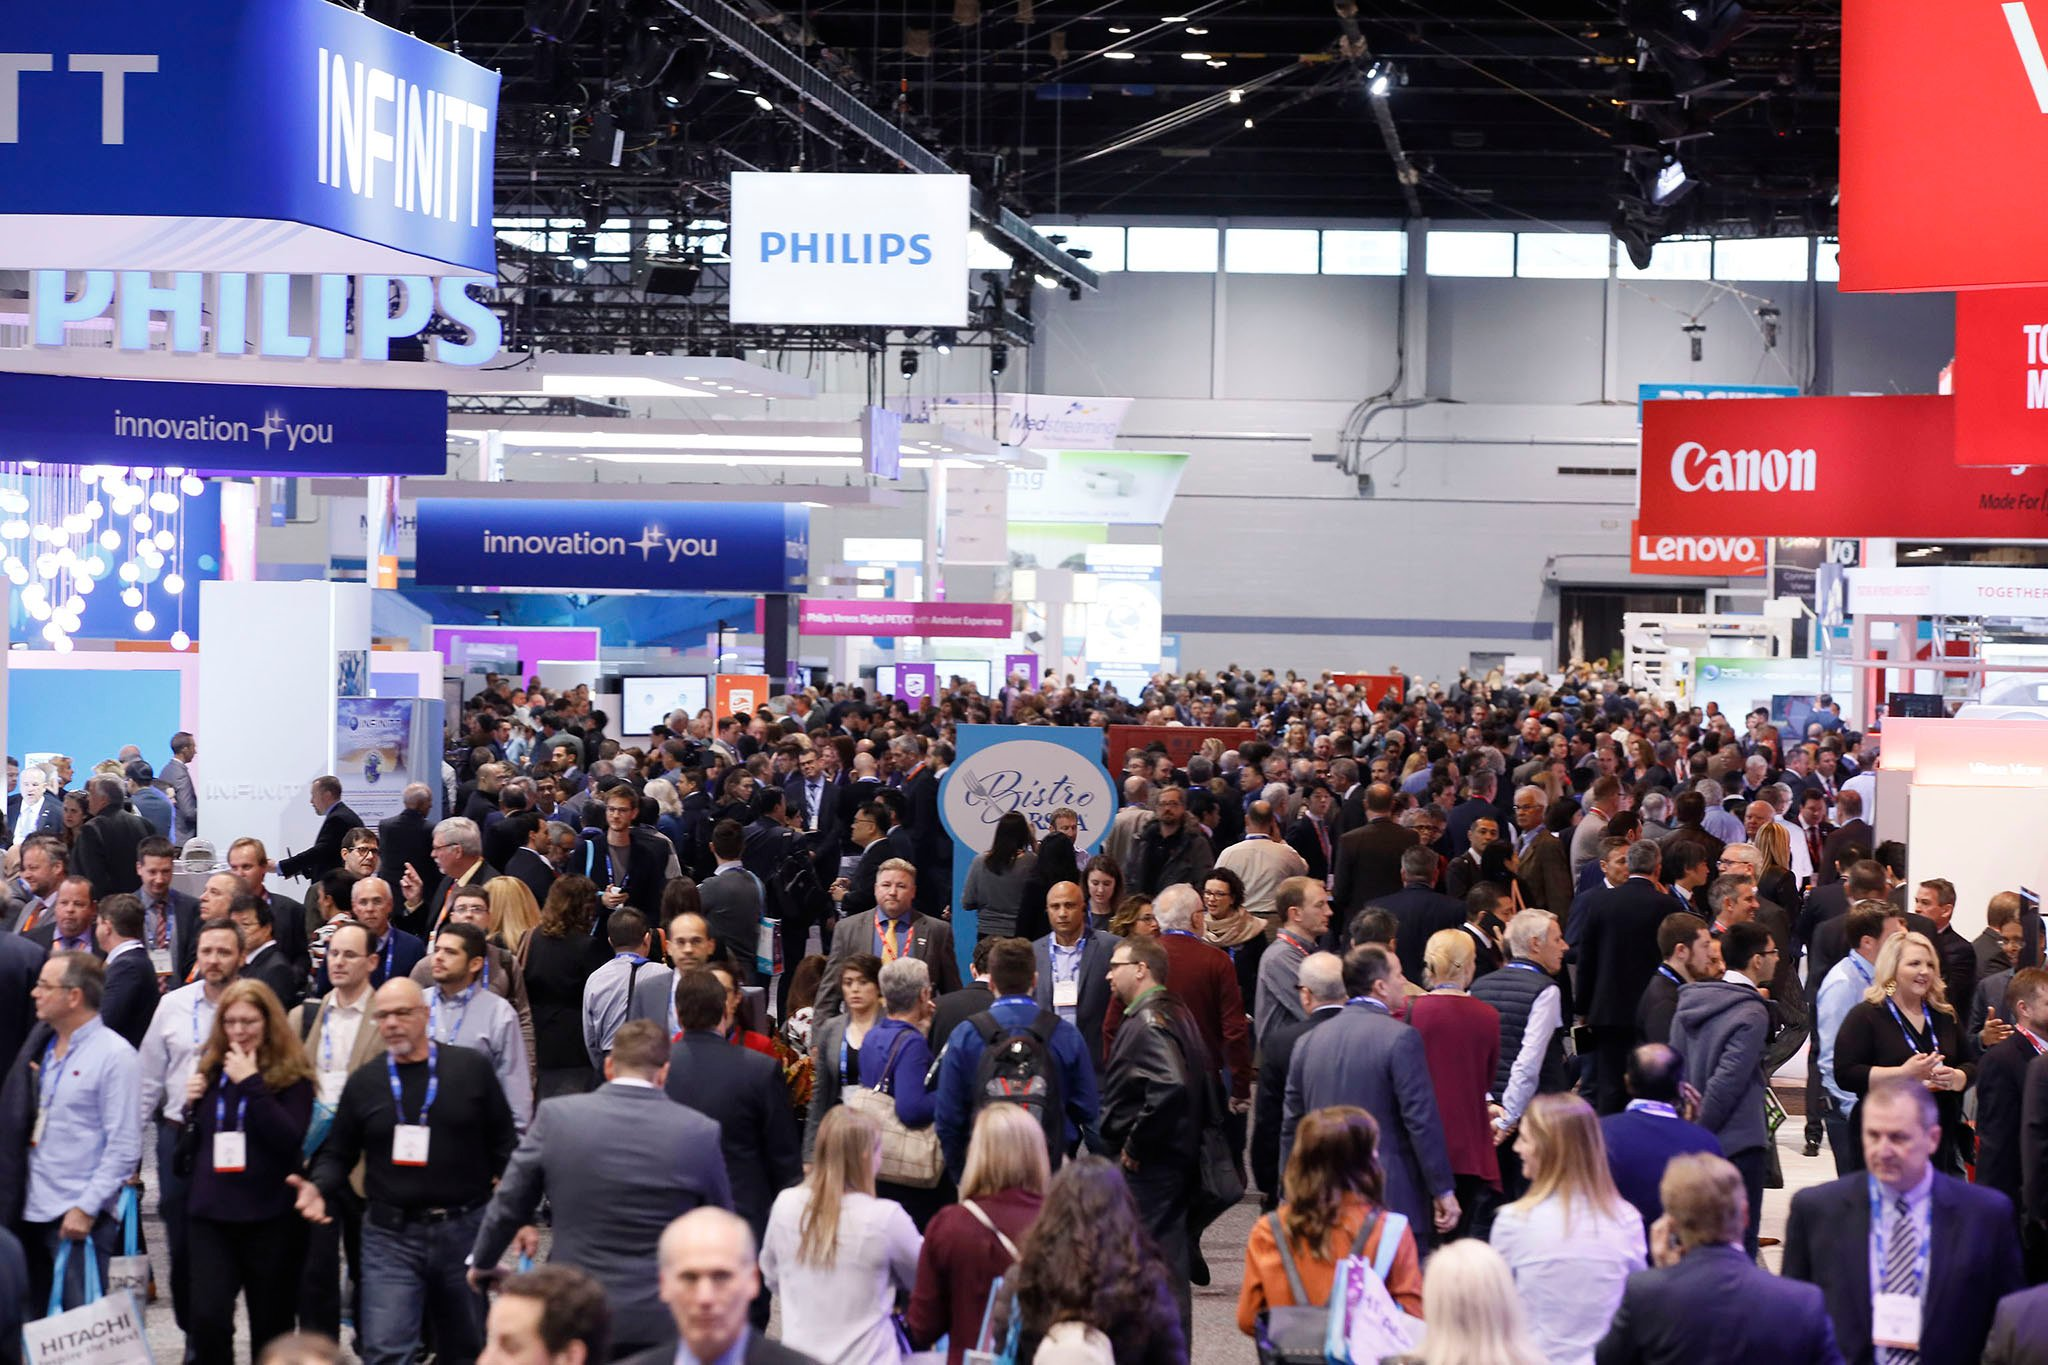 RSNA 2017 technical exhibits, expo floor, showing new radiology technology advances.